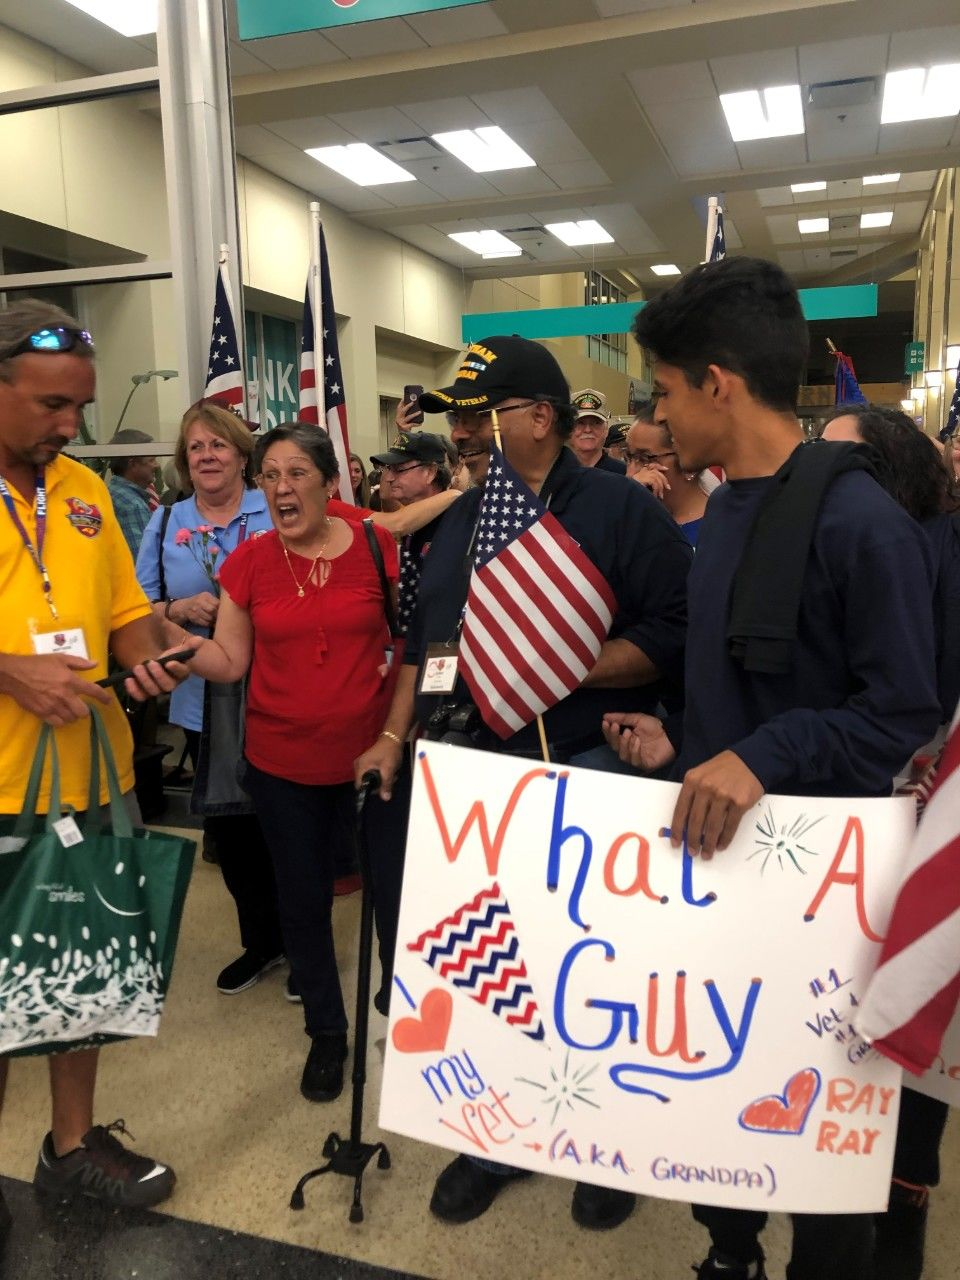 We're told there was a hero's welcome for returning vets at the Asheville Regional Airport.{ }Photo credit: Hannah Watts